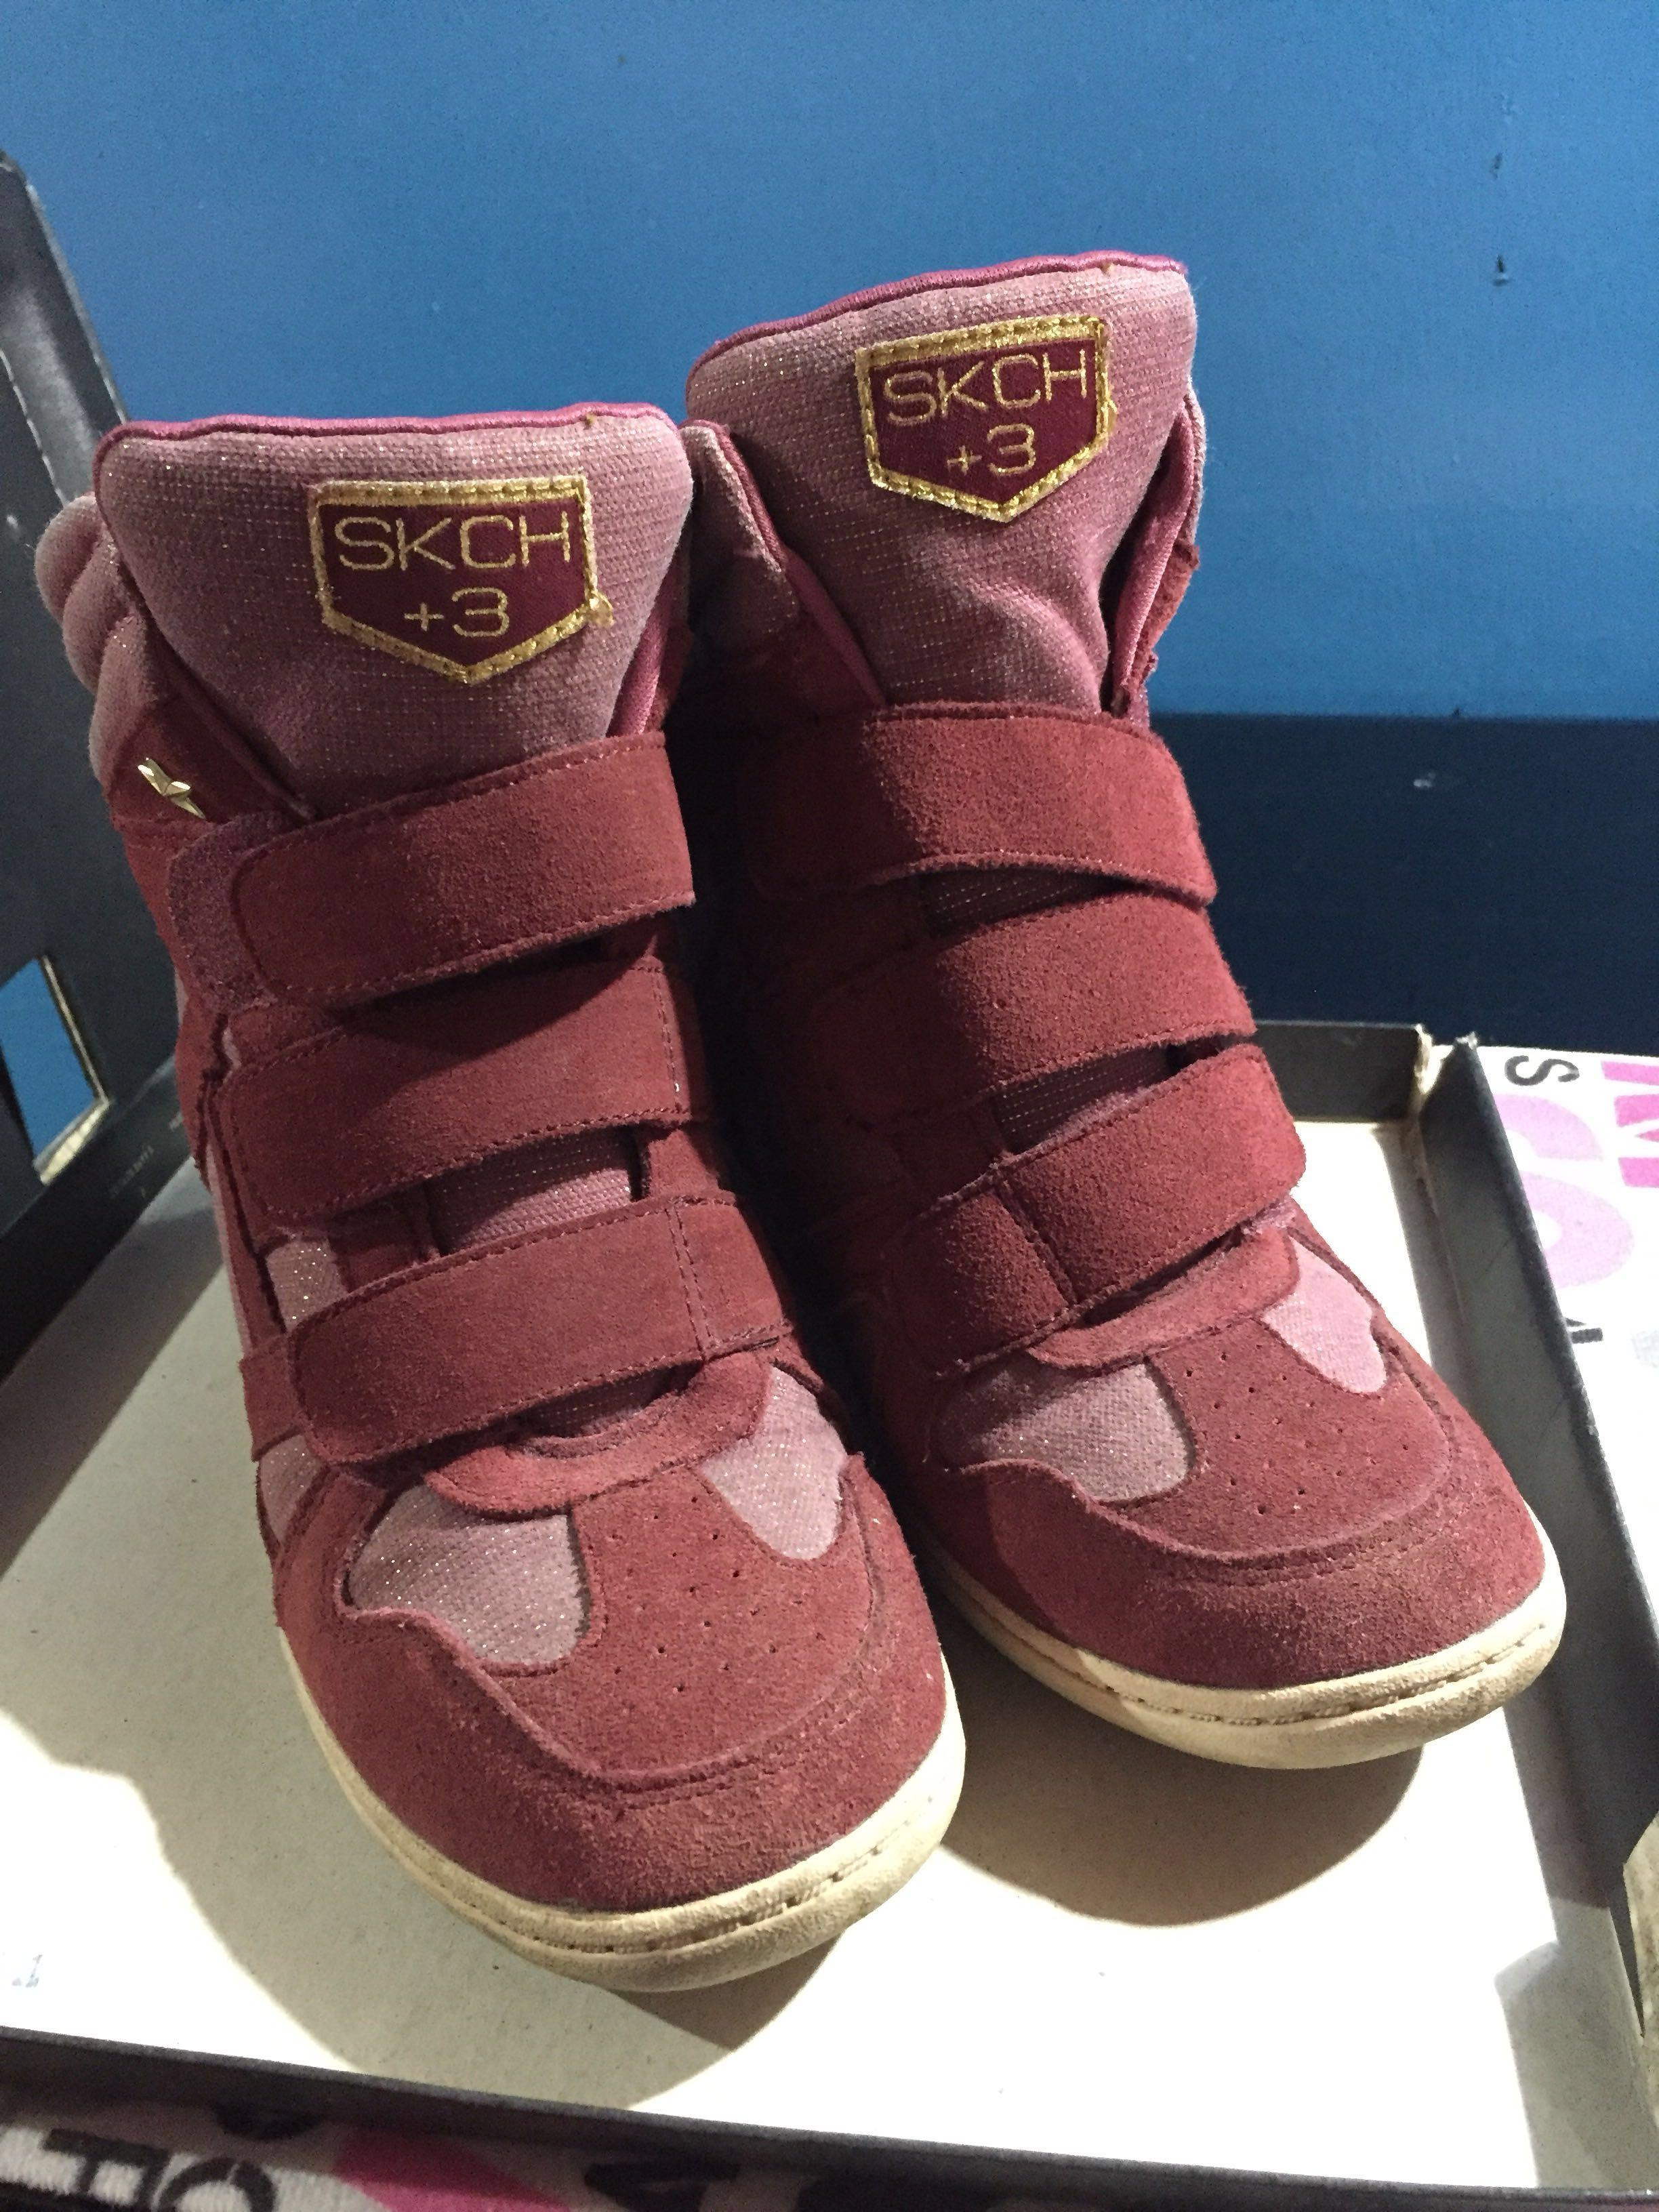 Maroon Skechers High Cut Shoes for